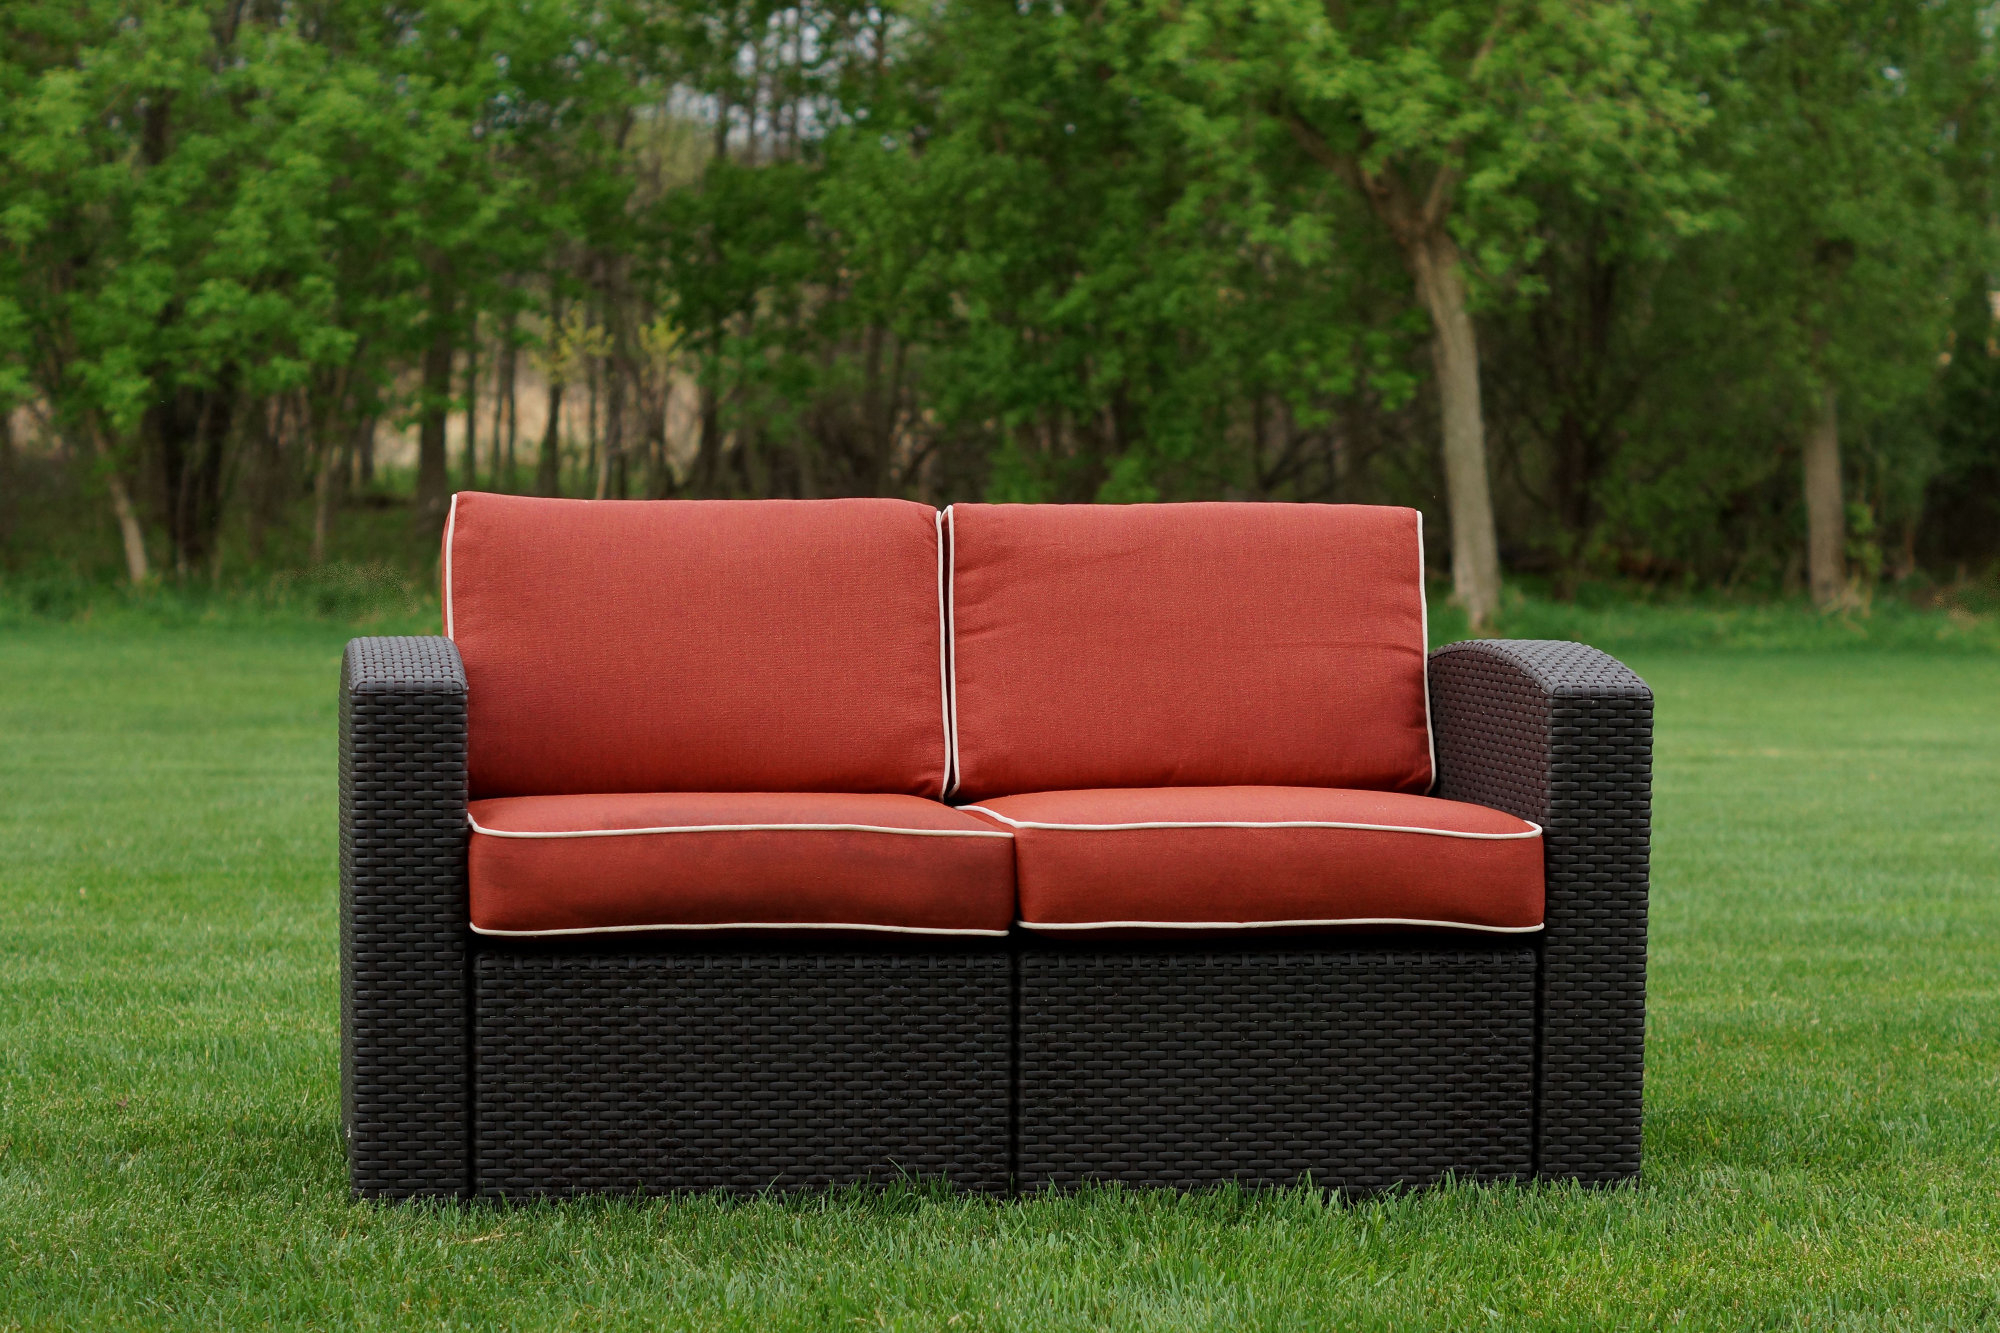 Mendelson Loveseats With Cushion With 2019 Loggins Loveseat With Cushions (View 17 of 20)